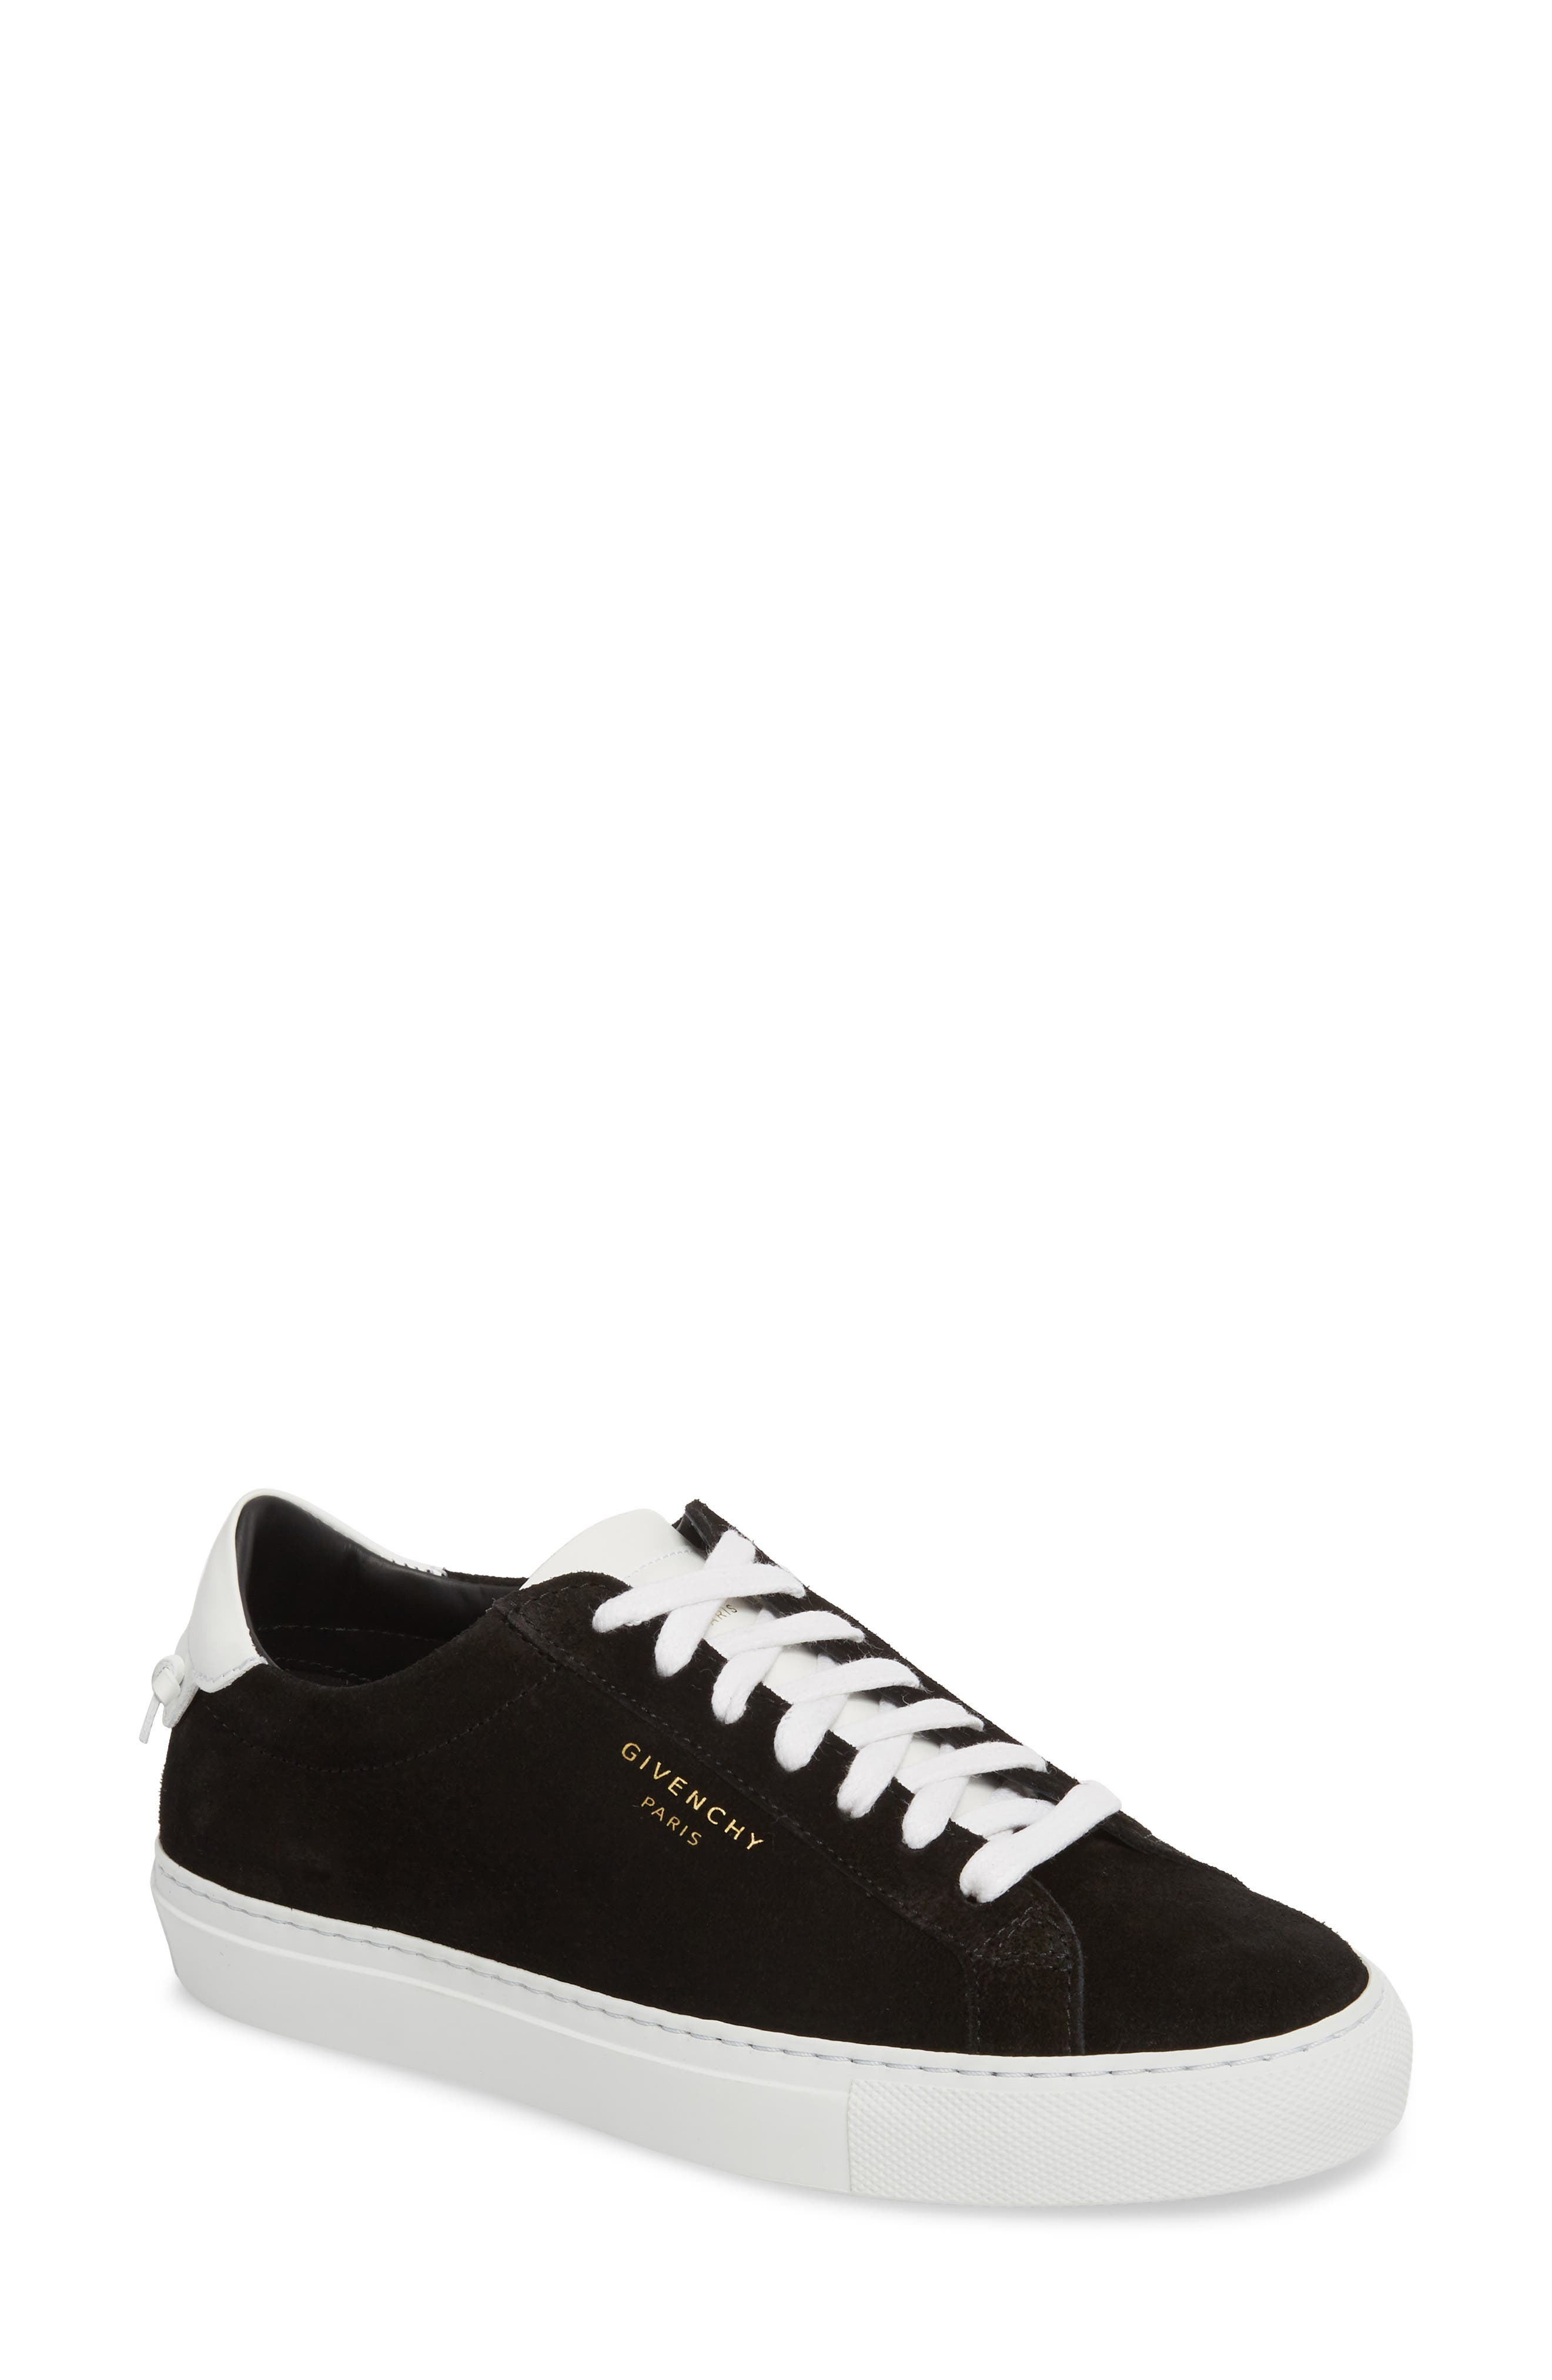 Sneakers for Women On Sale, White, Fabric, 2017, 3.5 4 4.5 5.5 Givenchy